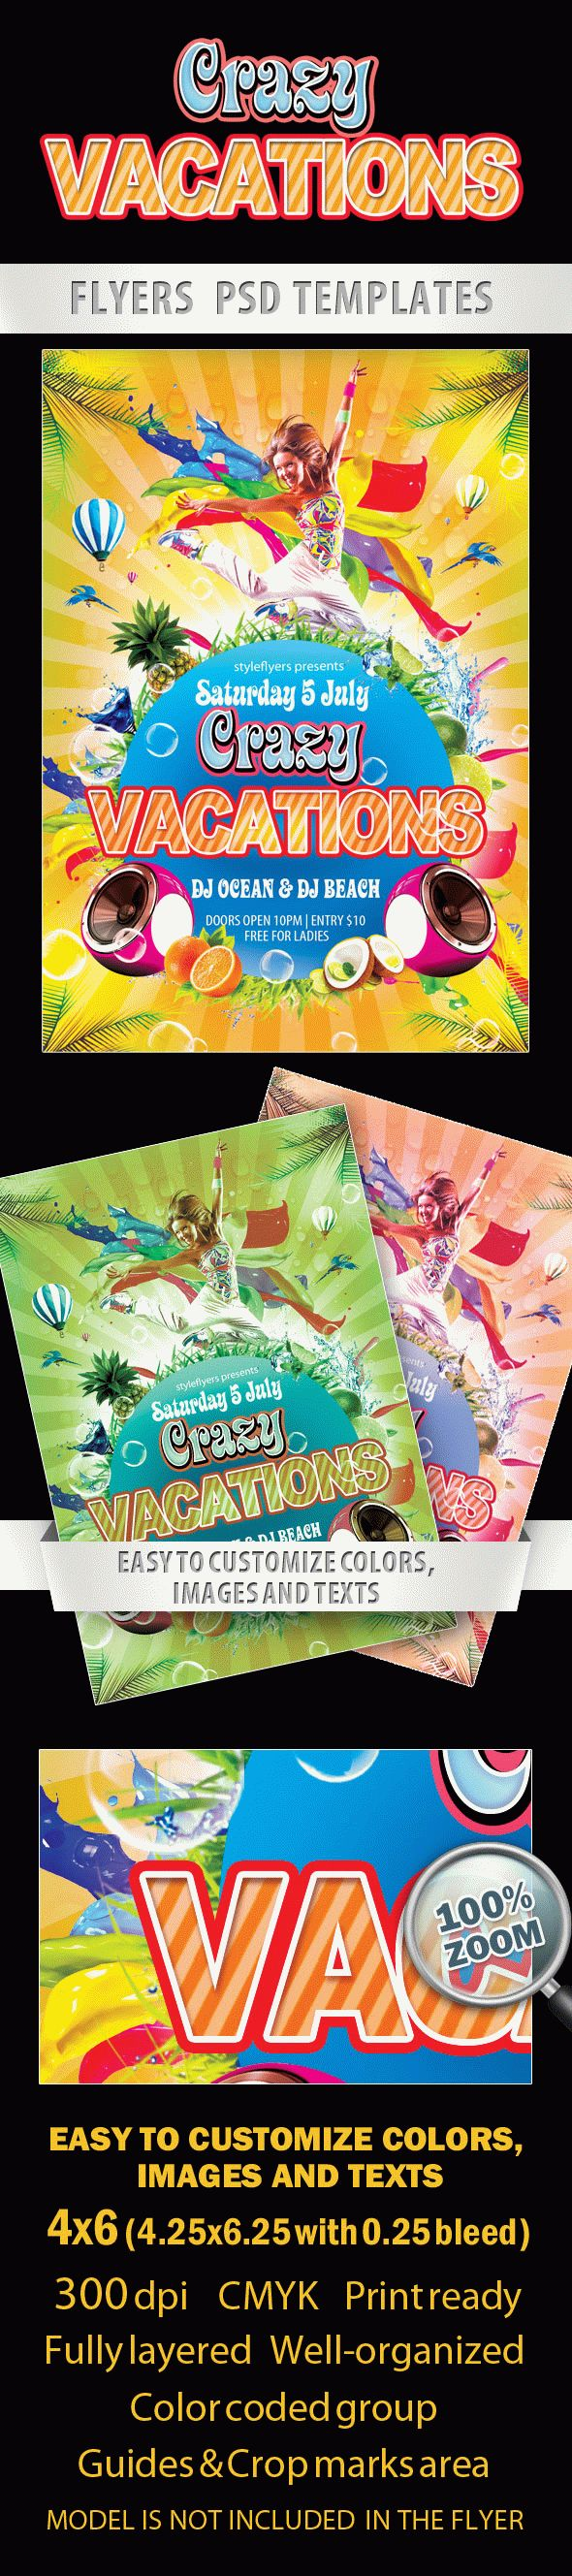 Crazy Vacations Party Flyer